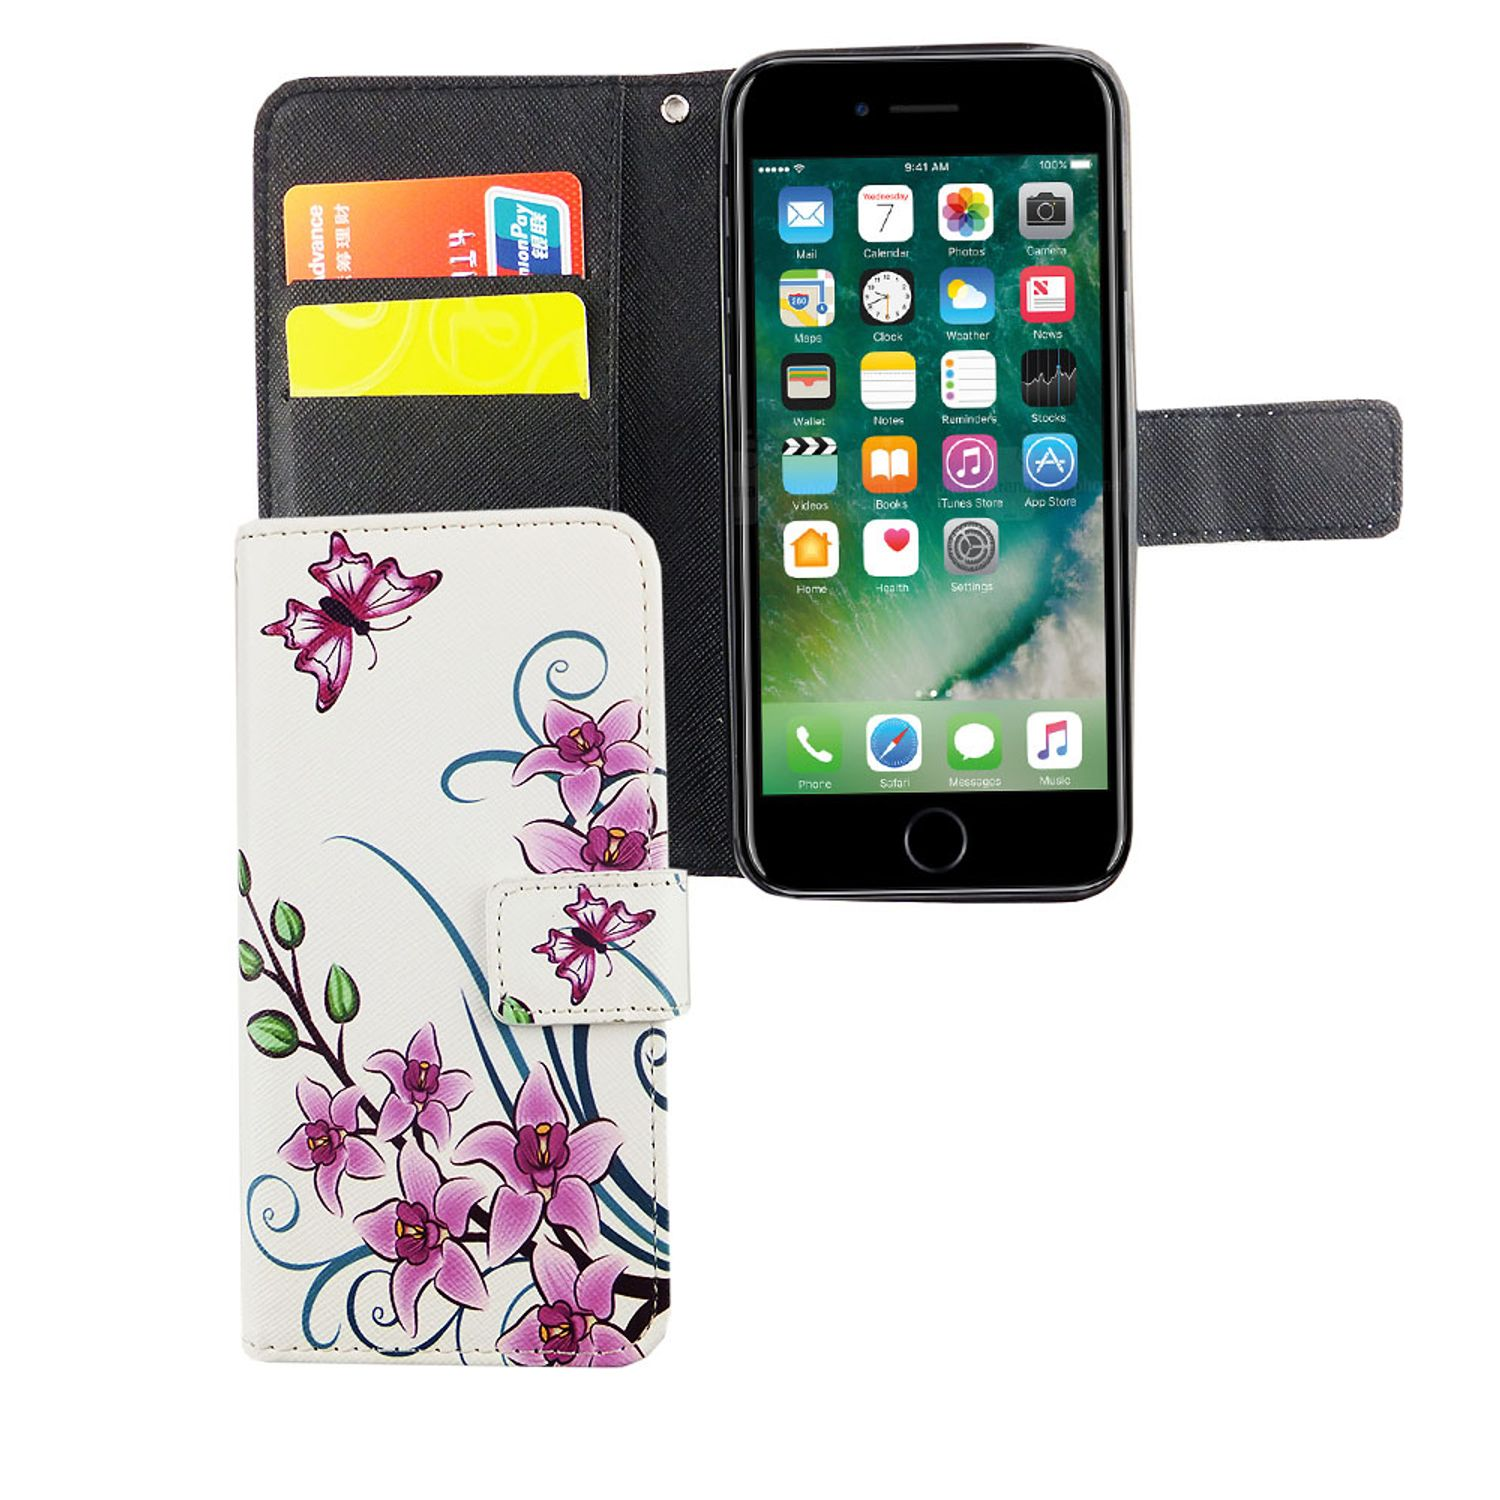 handyh lle tasche f r handy apple iphone 6 6s lotusblume. Black Bedroom Furniture Sets. Home Design Ideas